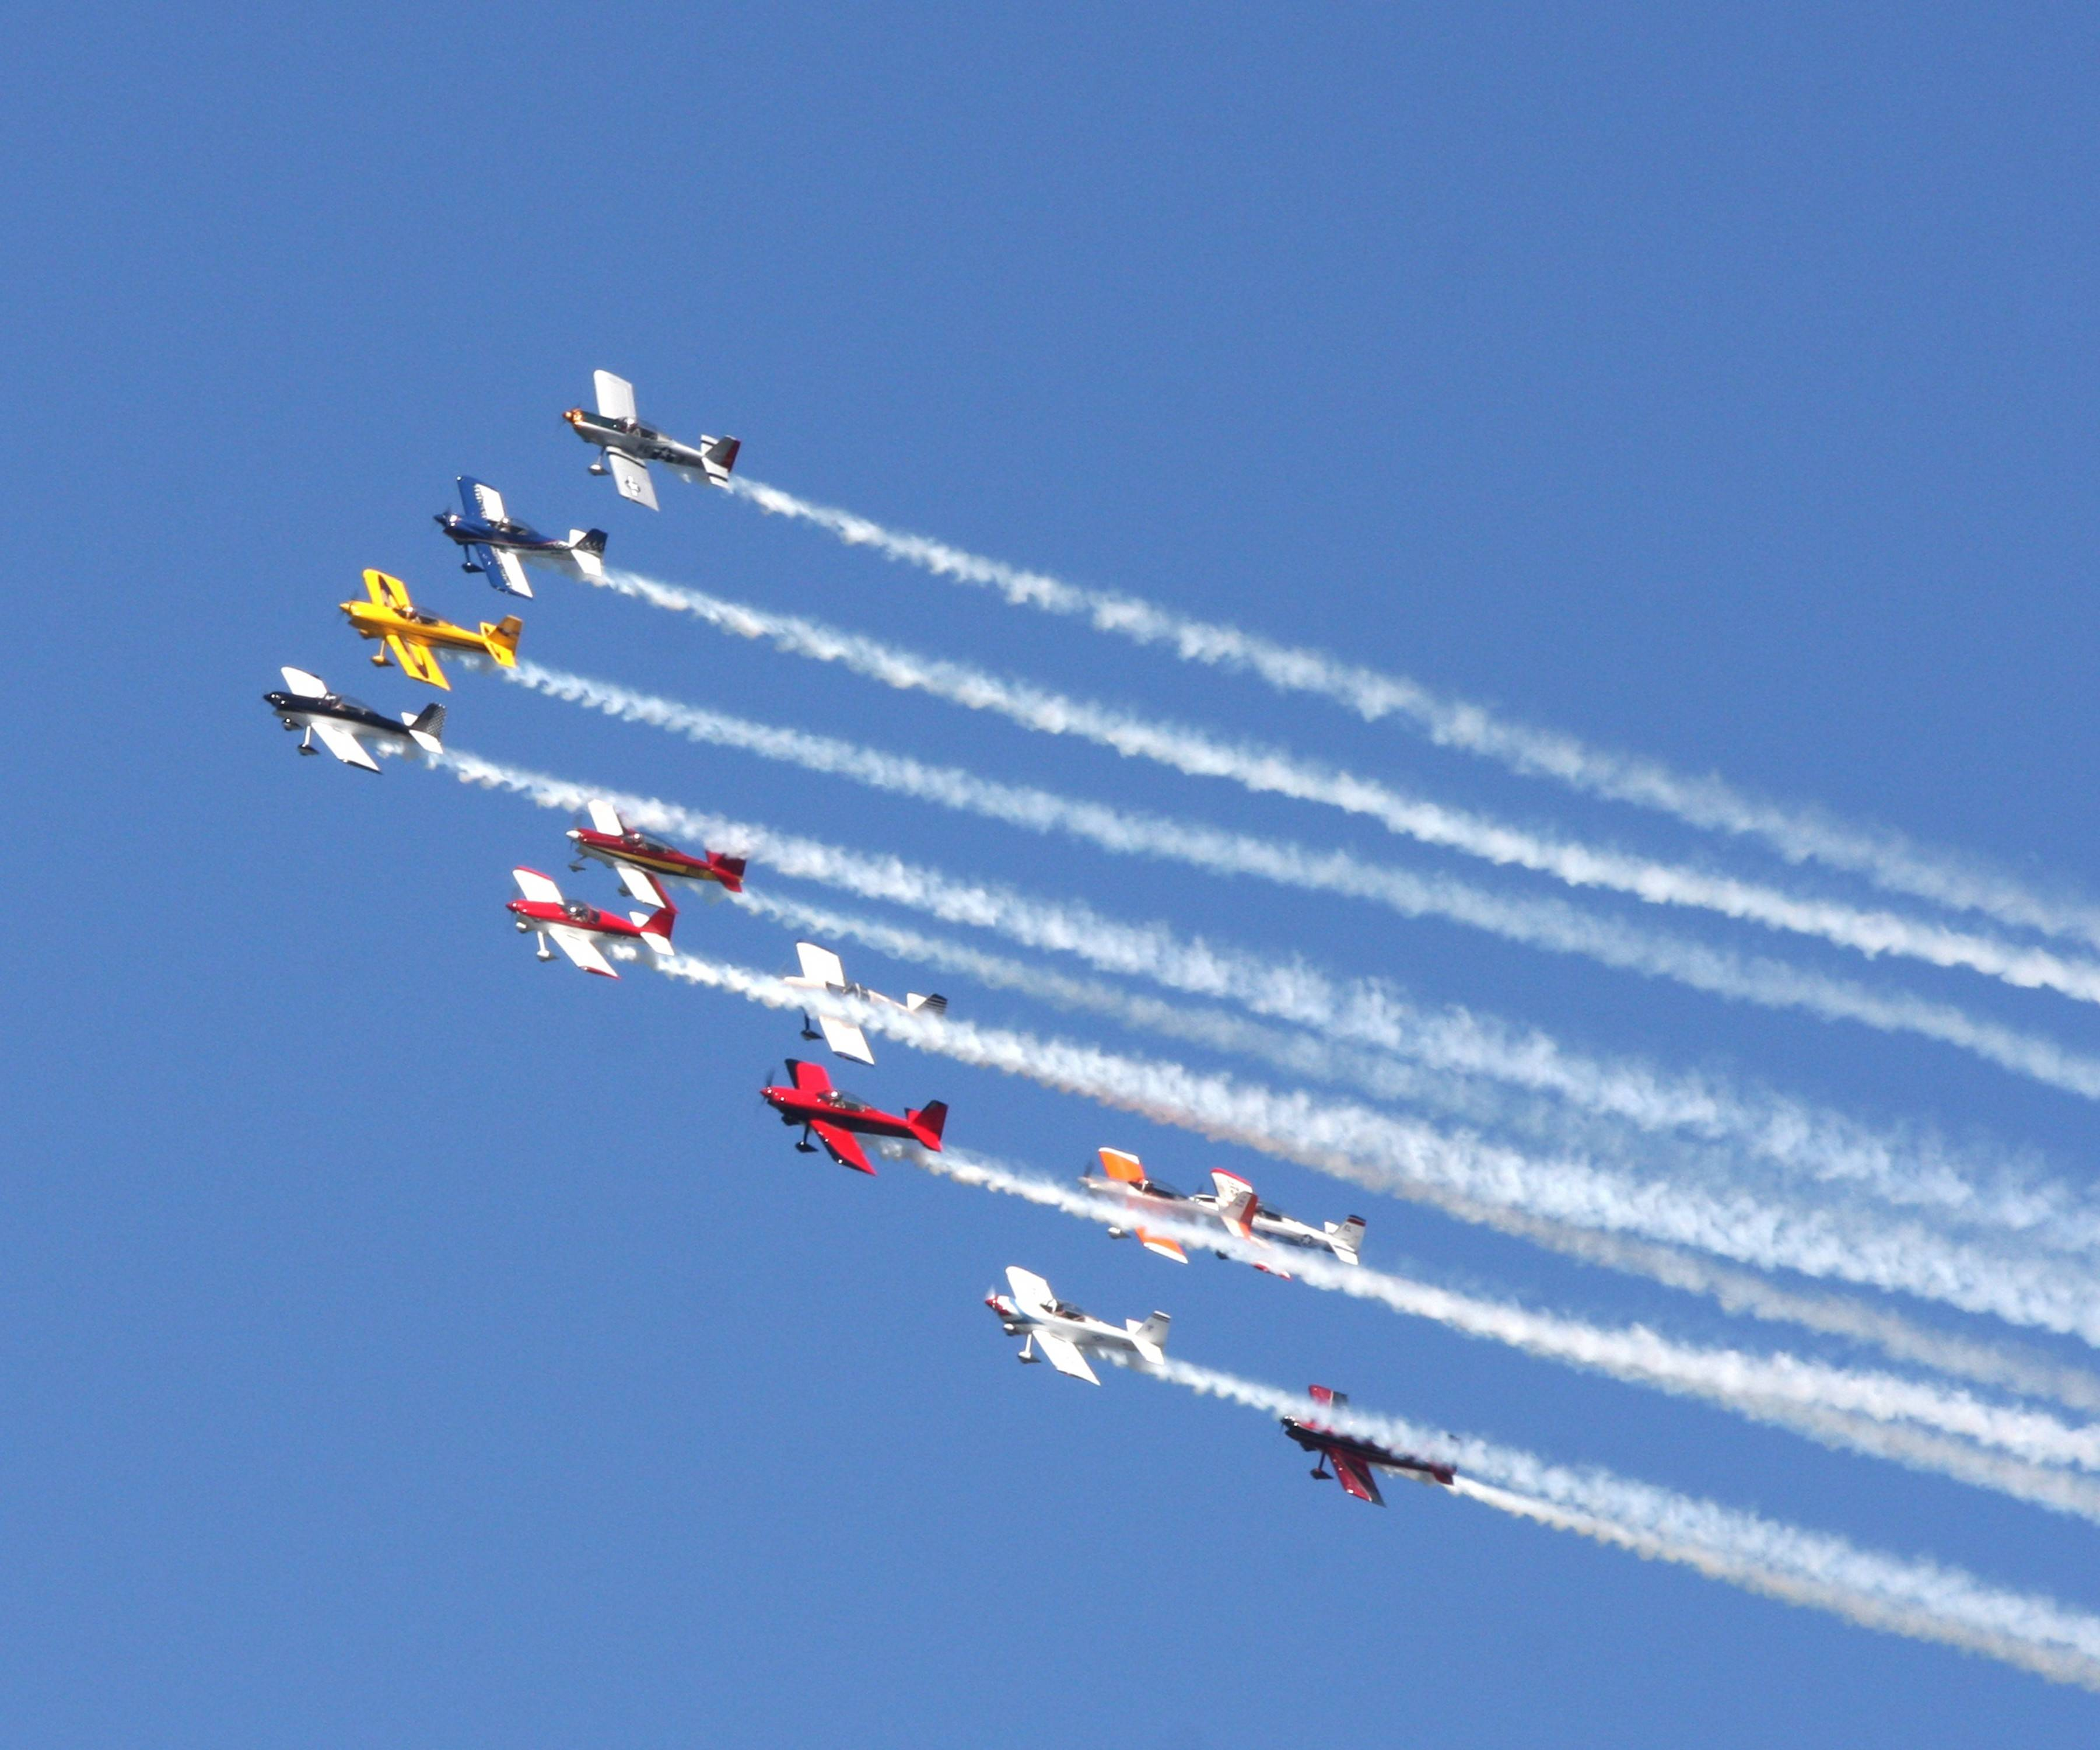 Team AeroDynamix is new to the Chicago Air and Water Show this year.